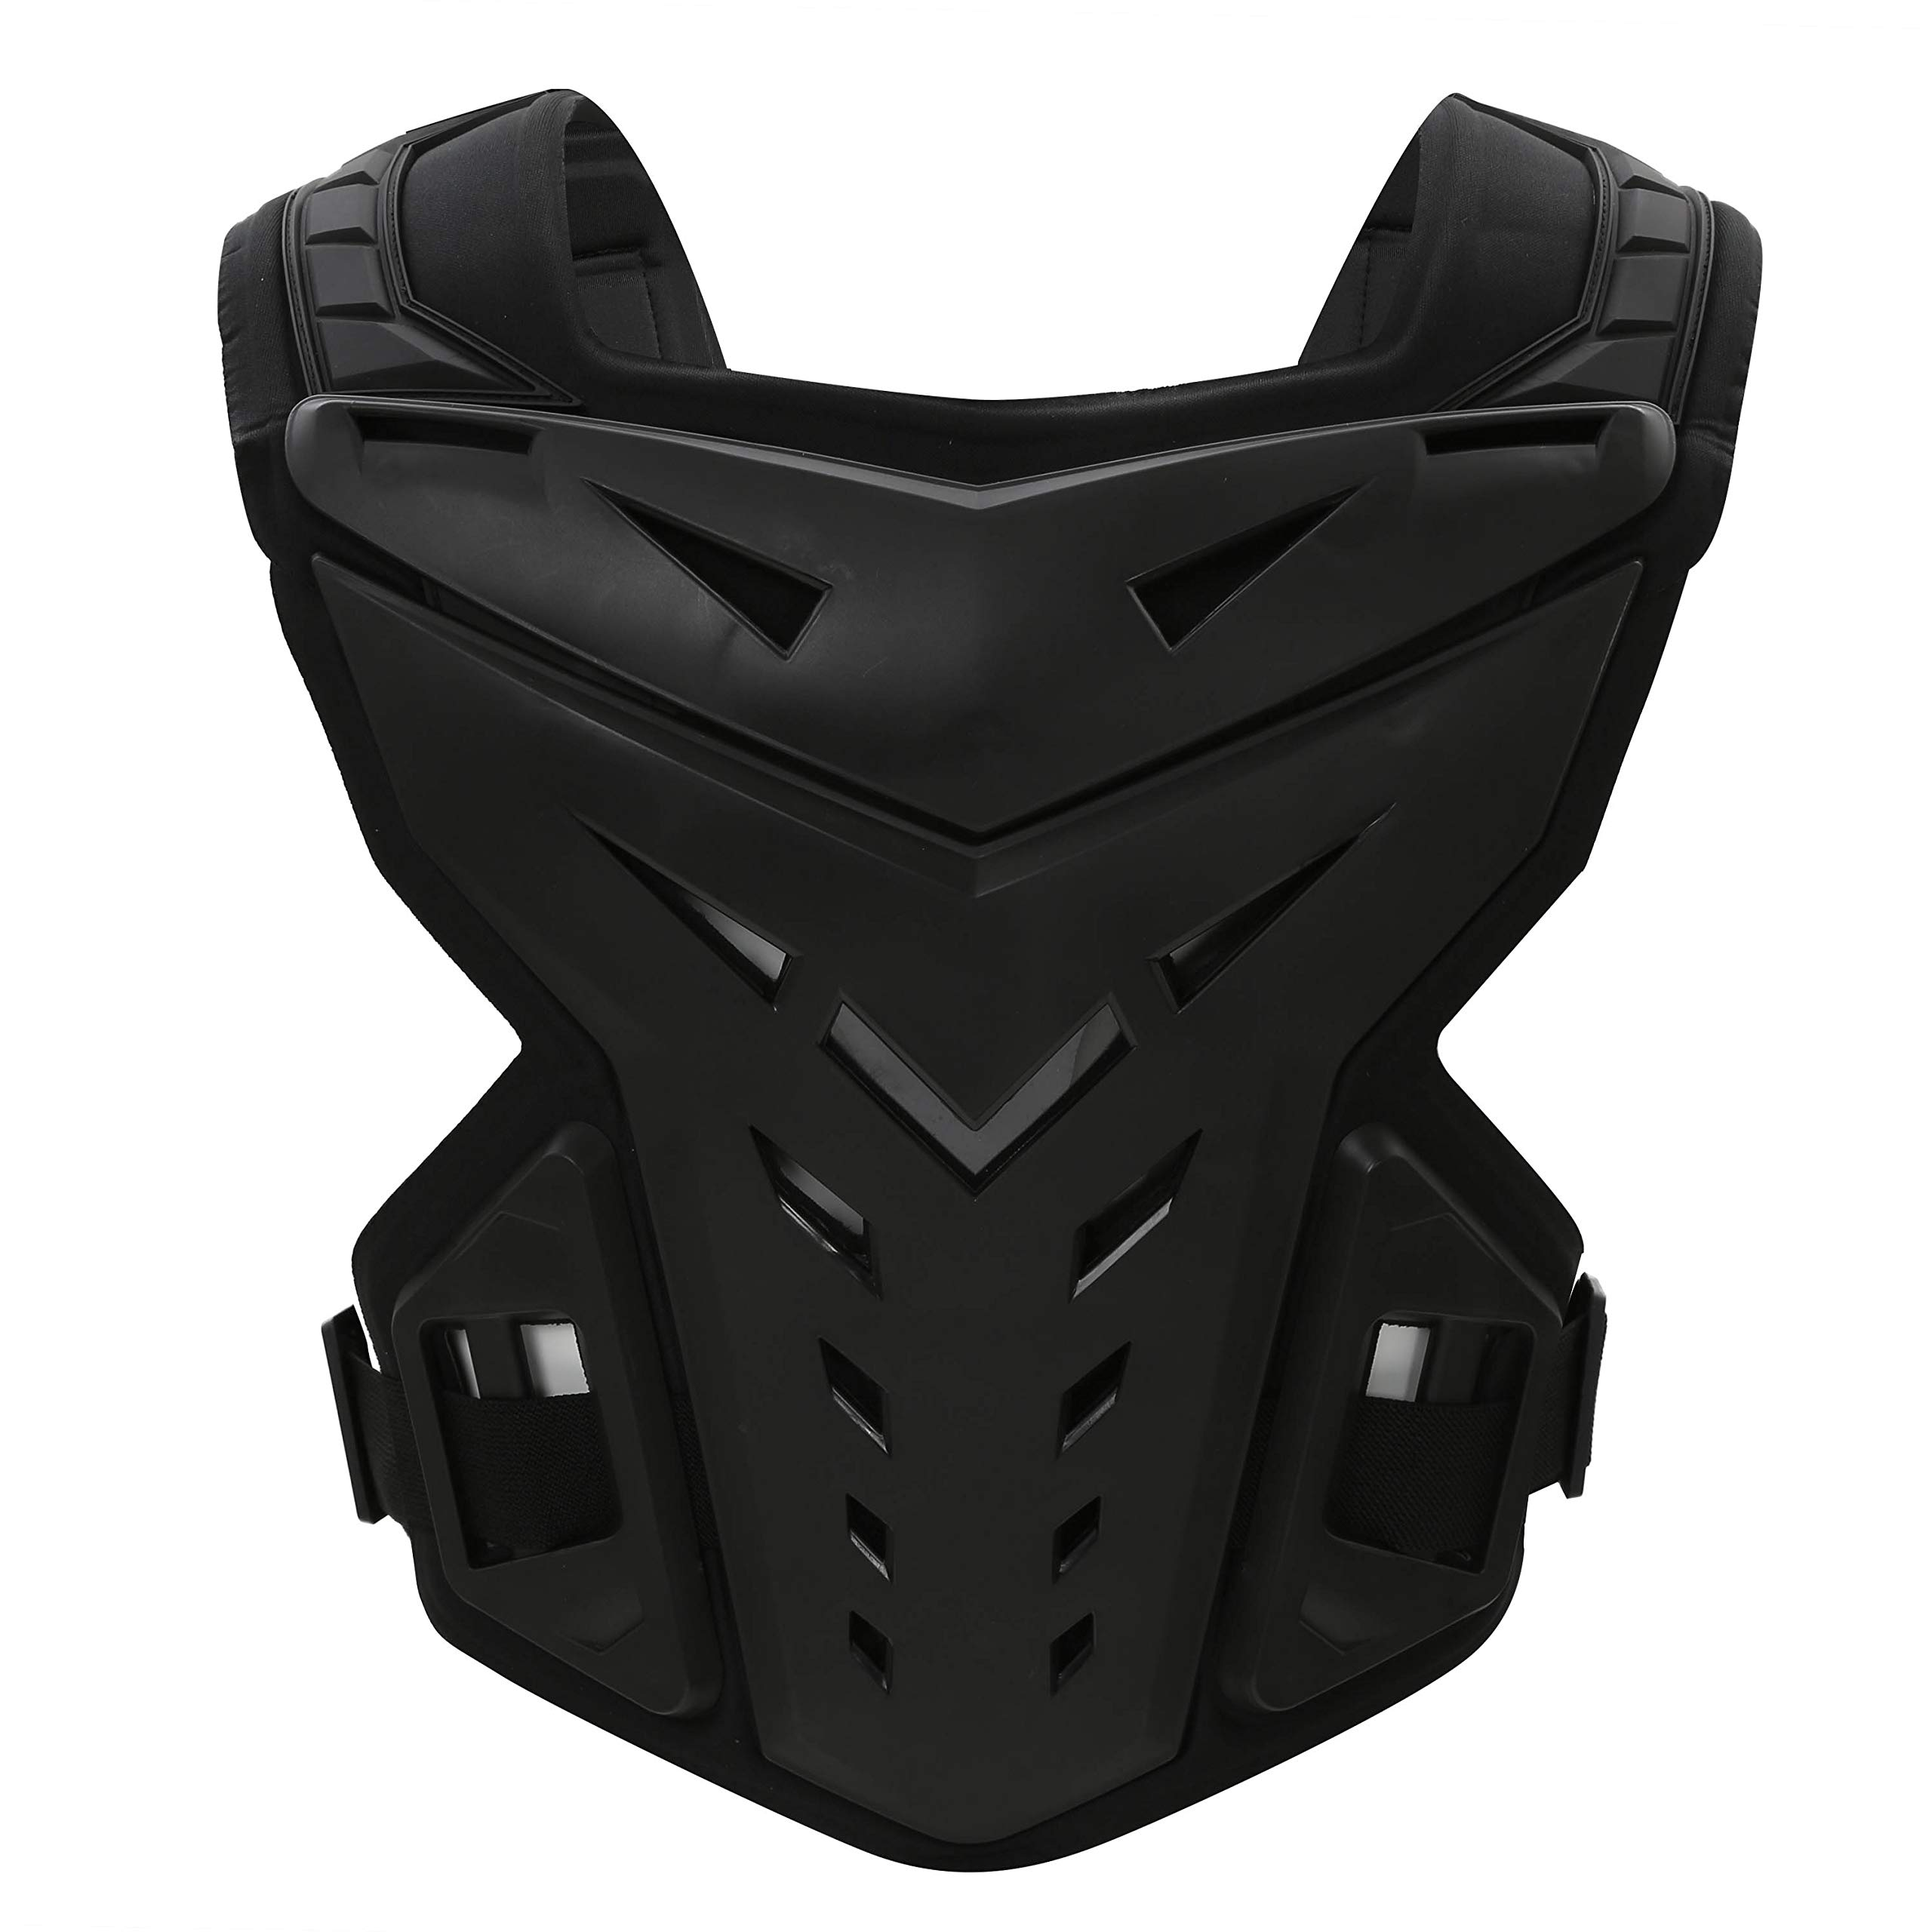 OHMOTOR Chest Back Protector Motorcycle Armor Vest Motorcycle Riding Chest Armor (Black) by OHMOTOR (Image #1)